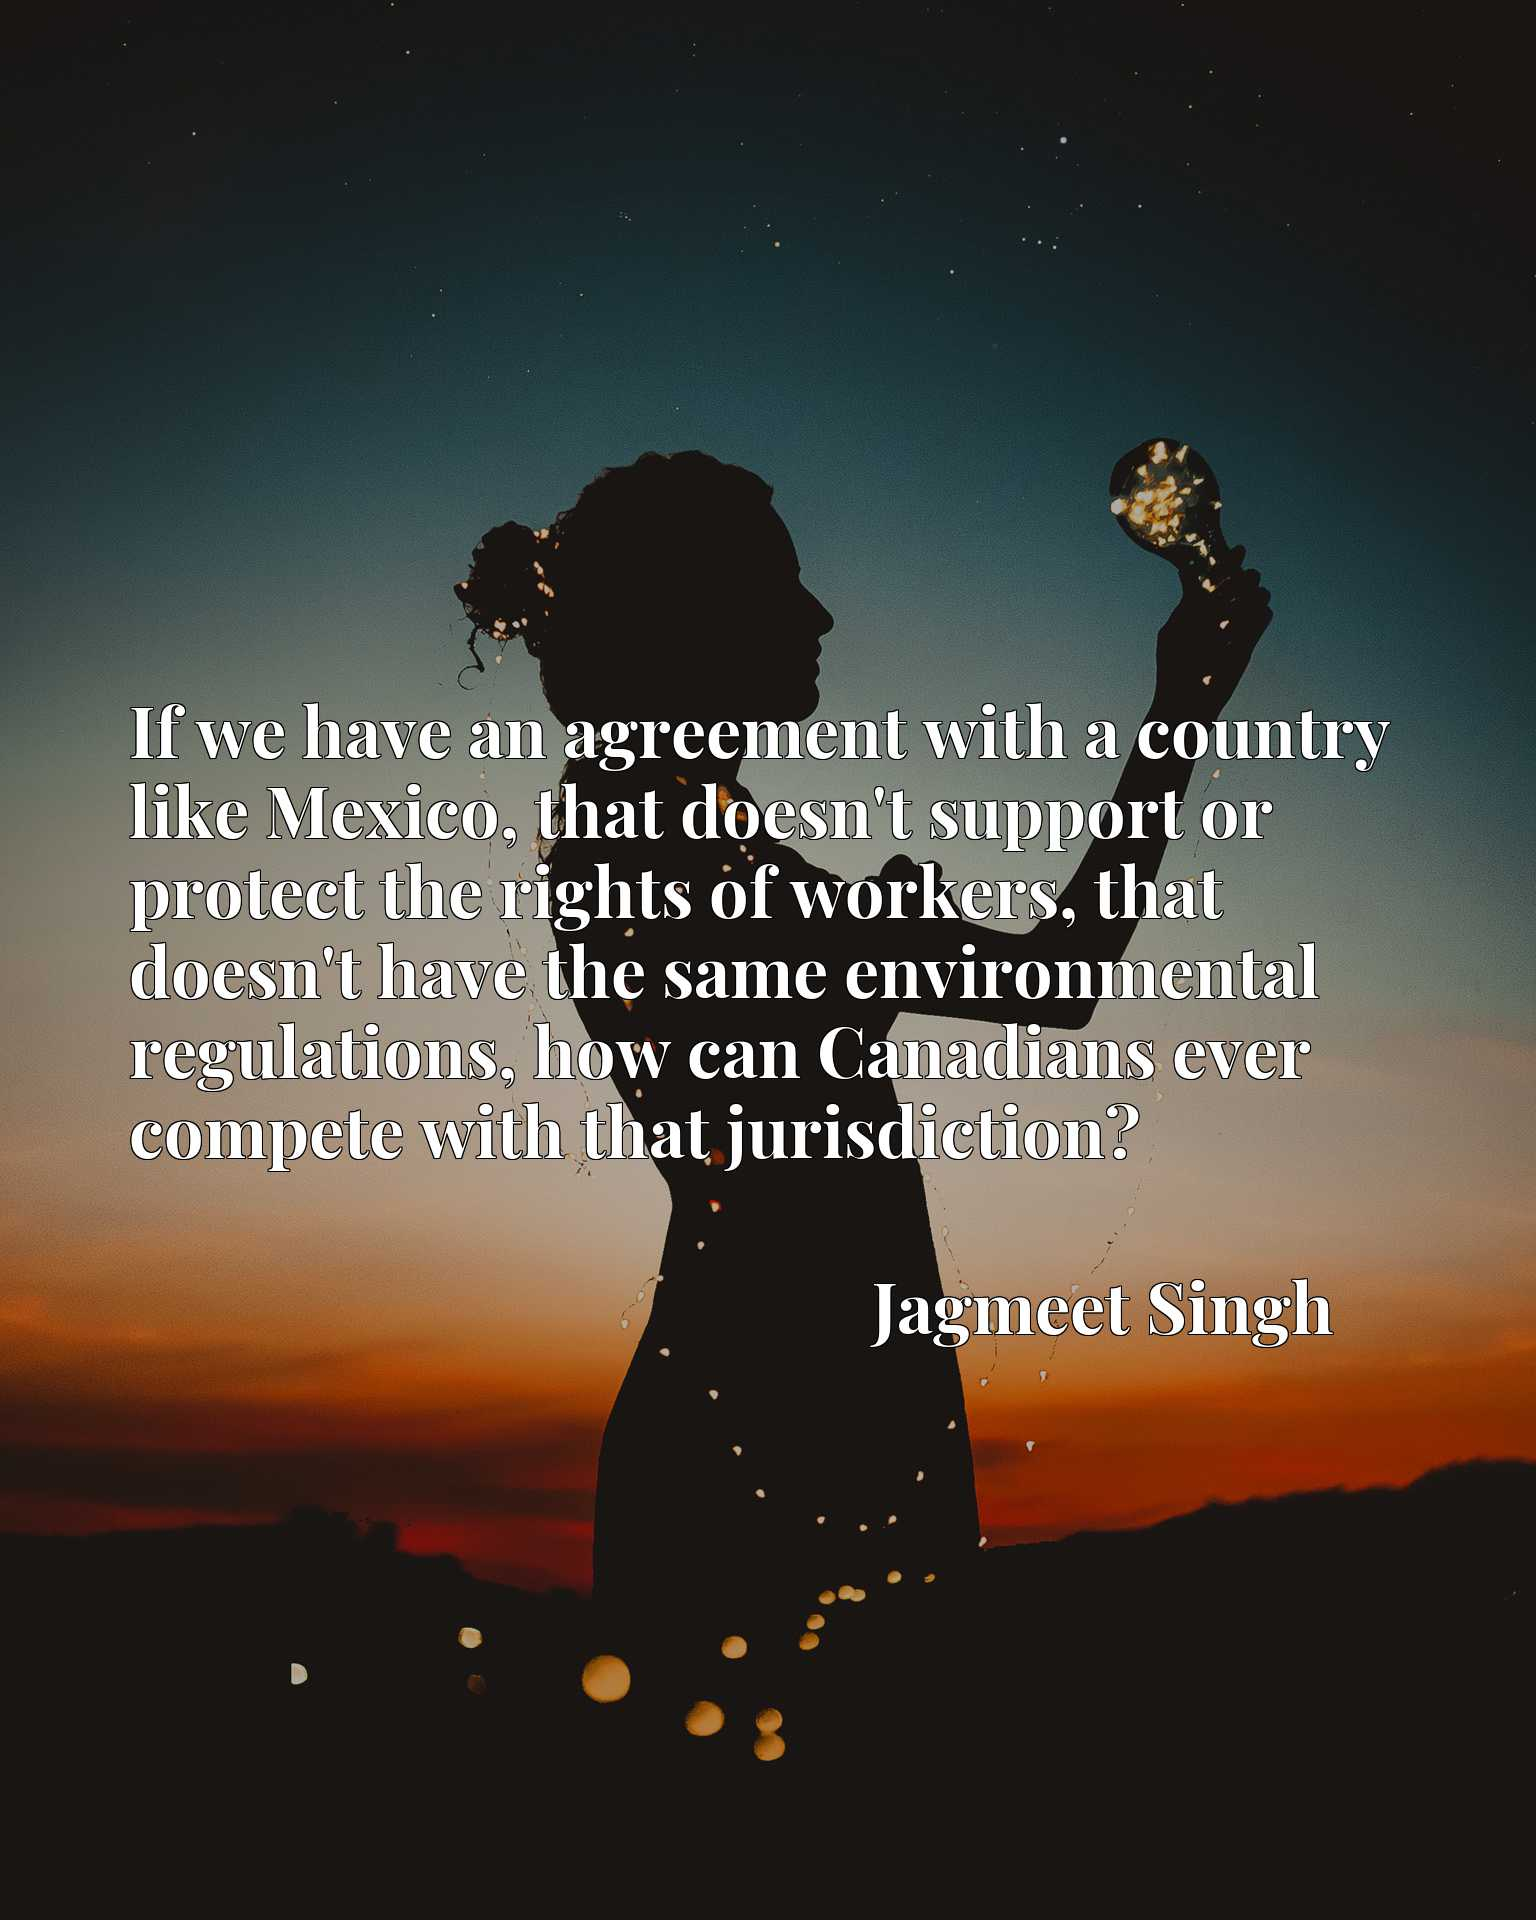 If we have an agreement with a country like Mexico, that doesn't support or protect the rights of workers, that doesn't have the same environmental regulations, how can Canadians ever compete with that jurisdiction?